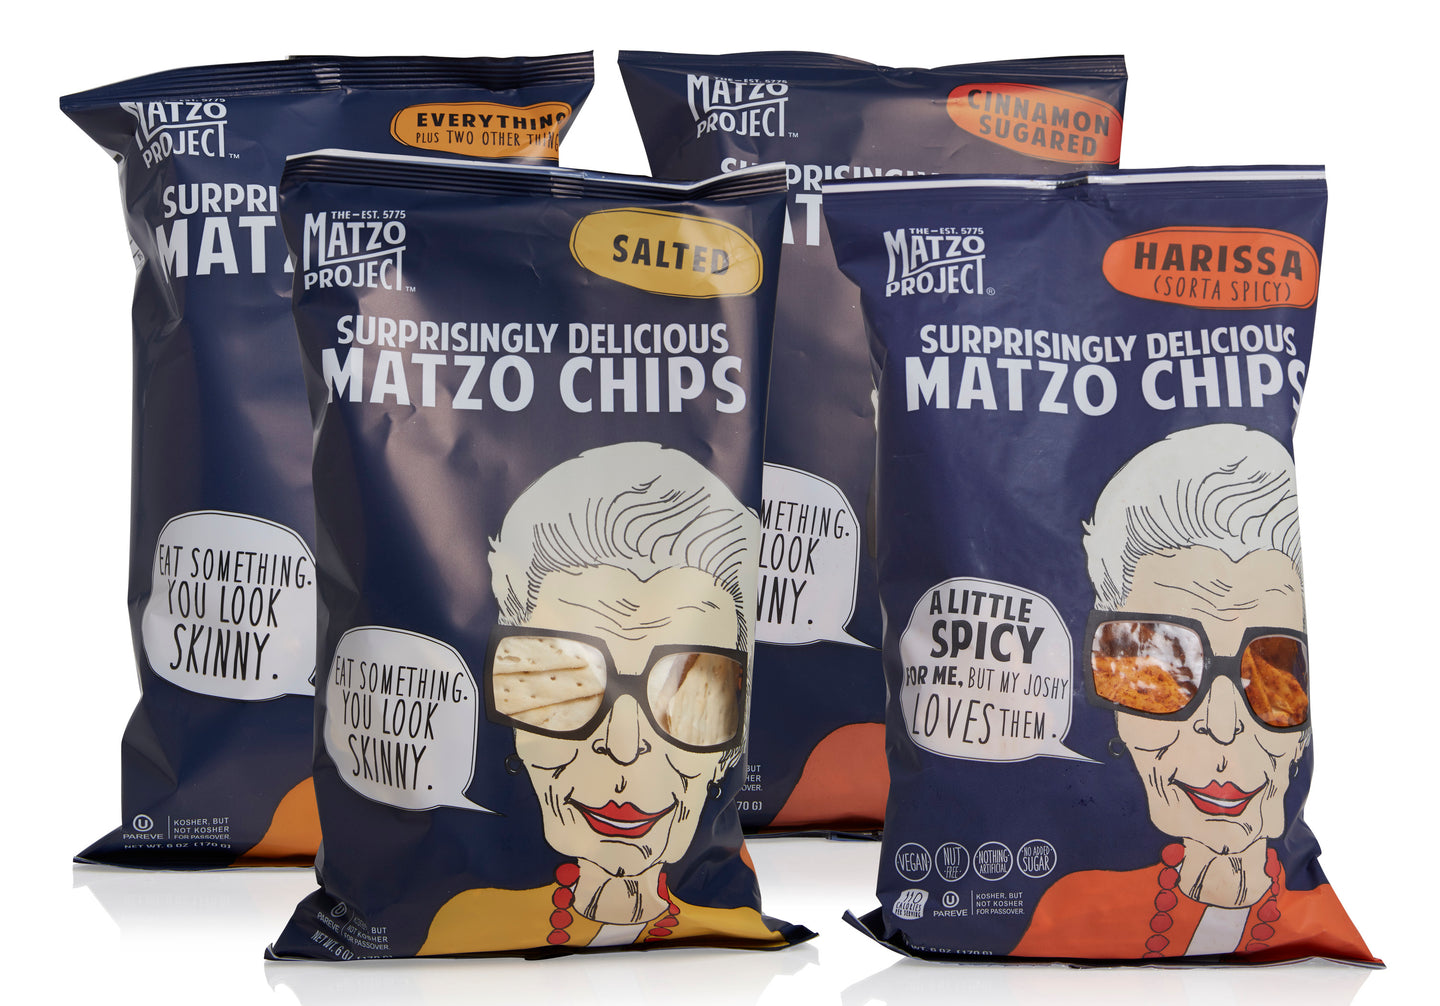 Matzo Chips, Variety Pack of Large Bags (Everything, Salted, Cinnamon Sugared, Harissa) from The Matzo Project, Kosher, Vegan, Nut-Free, No Trans Fat, Nothing Artificial, 6oz, Pack of 12